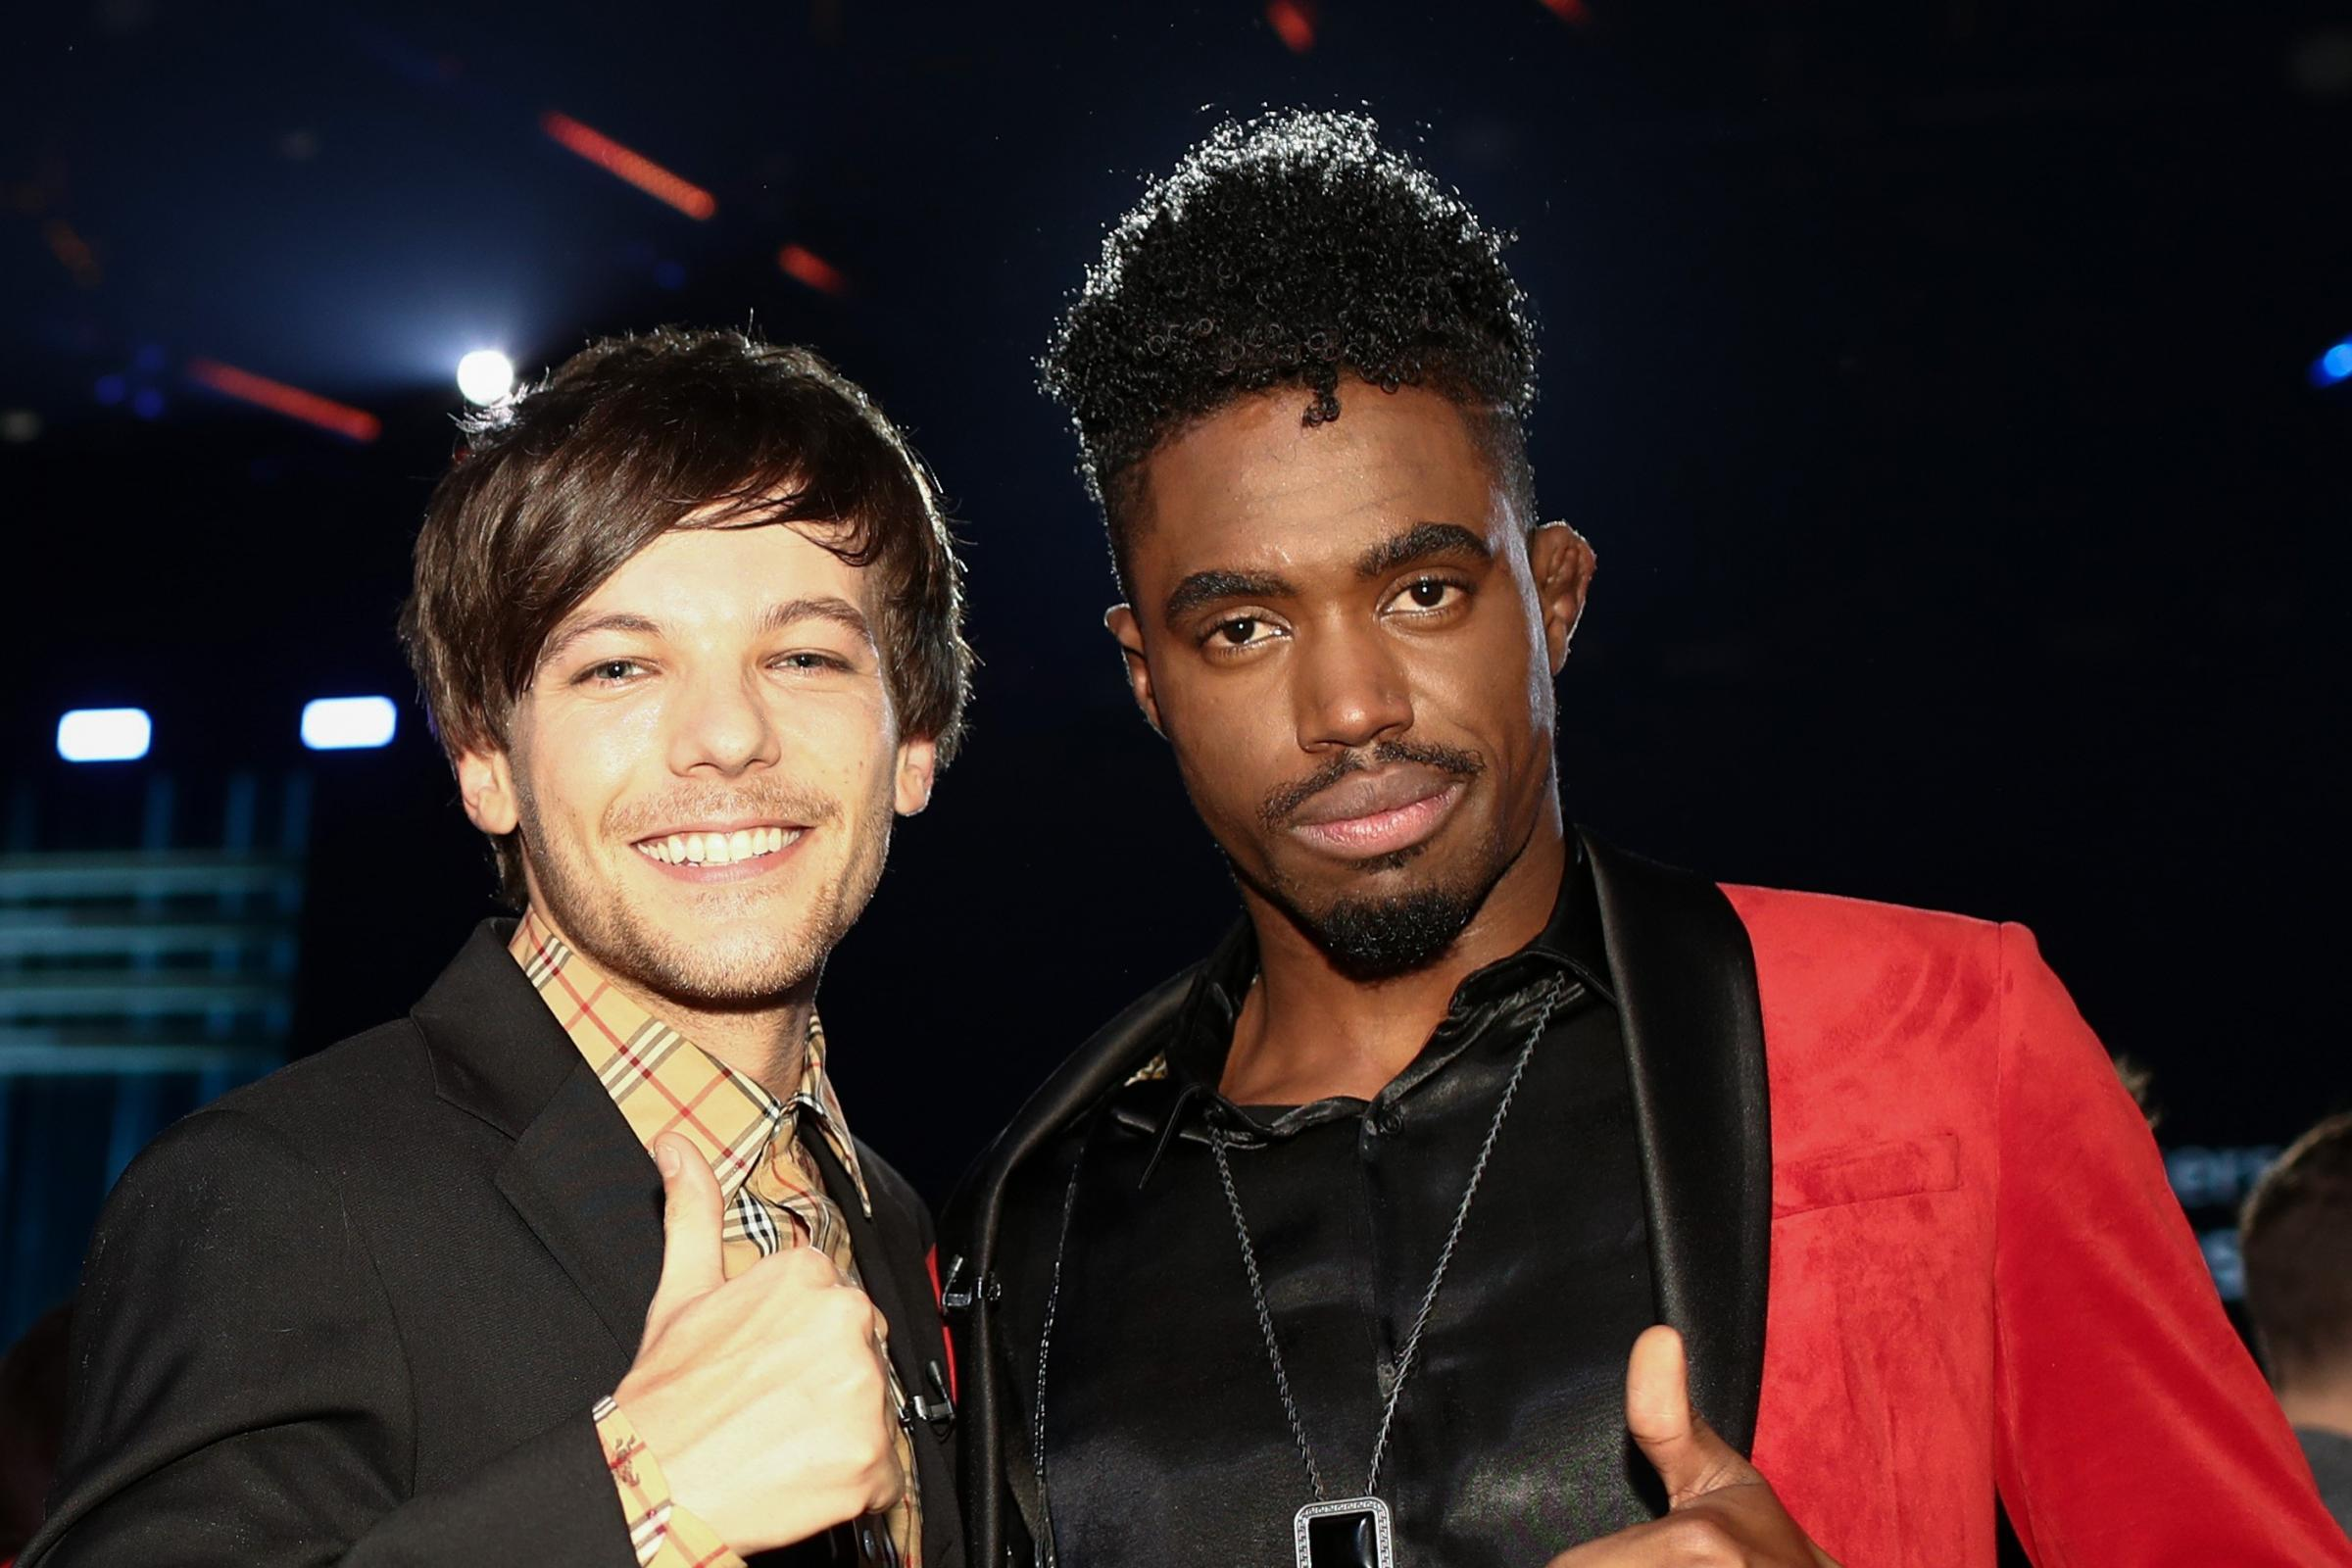 Dalton Harris and judge Louis Tomlinson react after Harris wins The X Factor